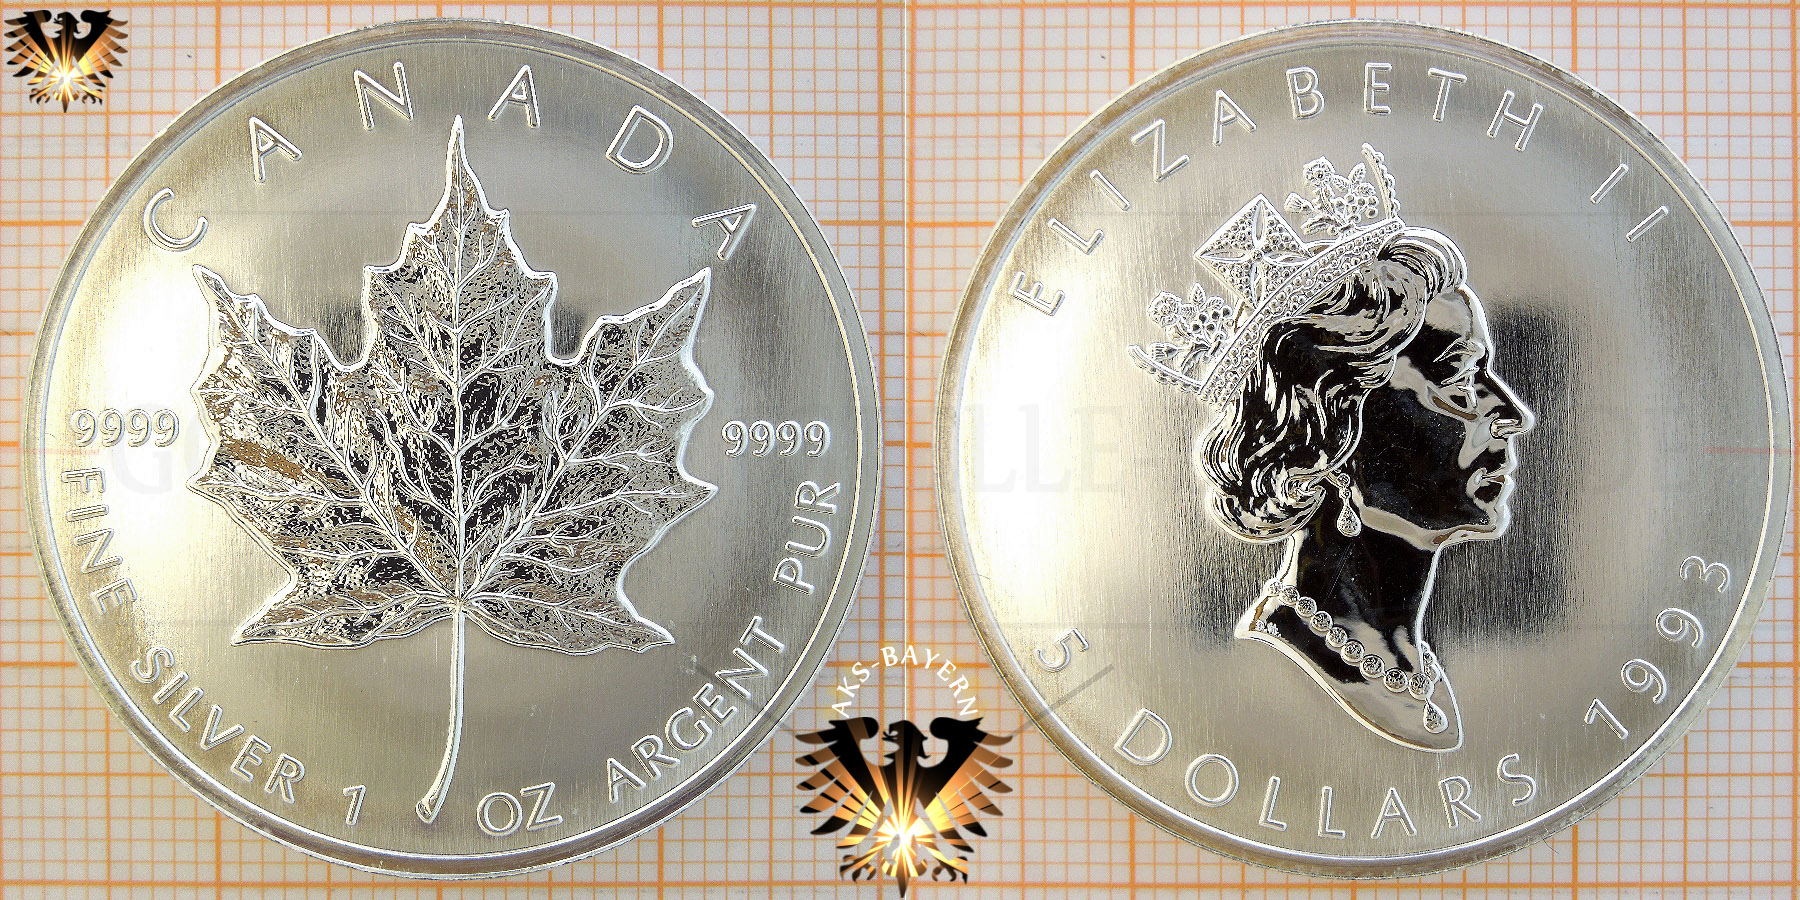 Bullionmünze: CAN, 5 Dollars, 1993, Canada, Maple Leaf 1 oz © goldankaufstelle-bayern.de